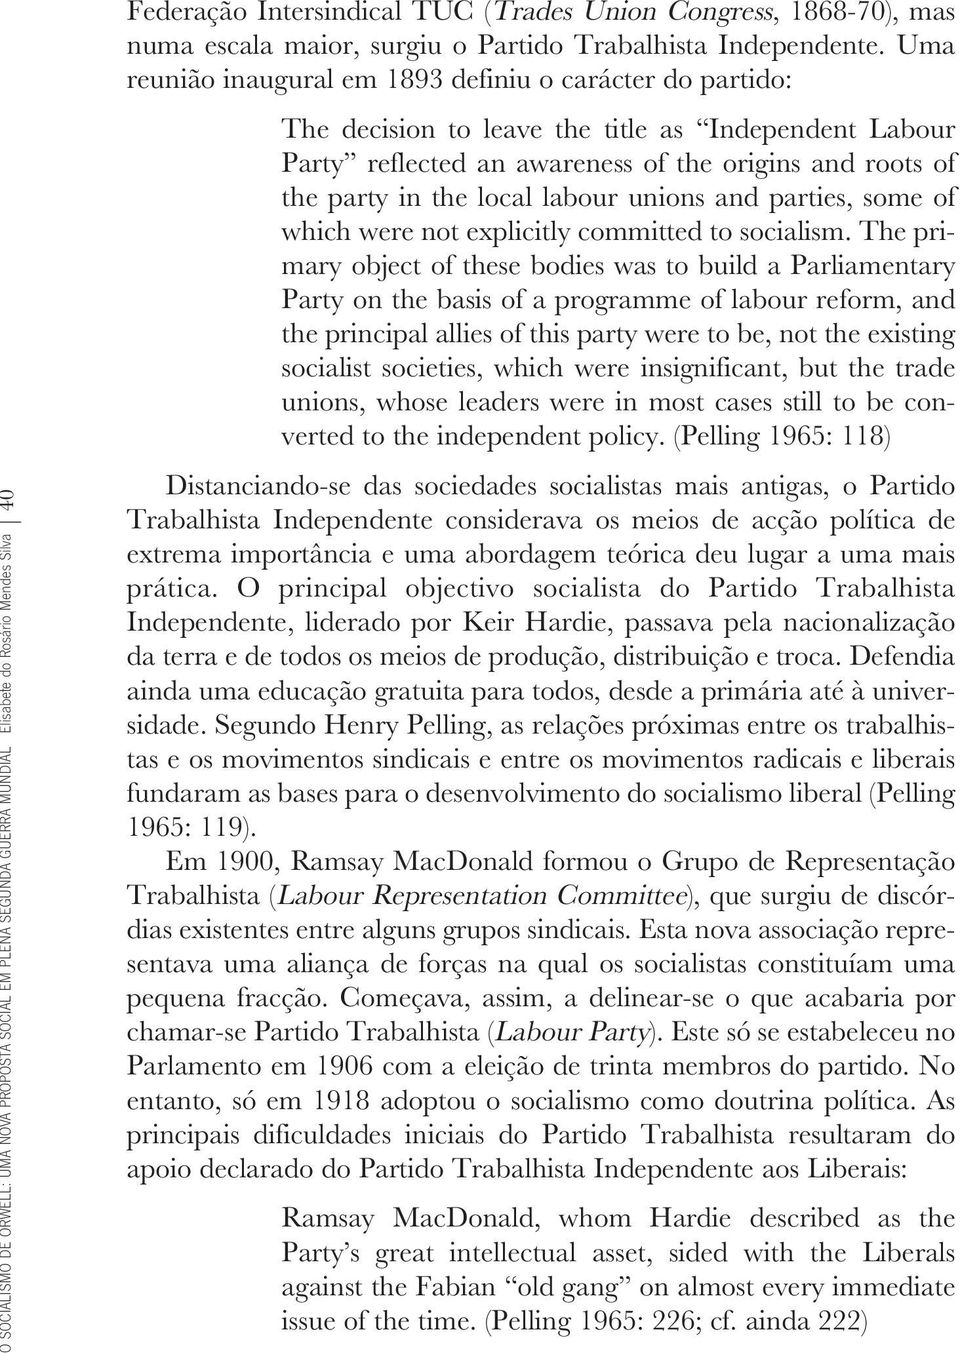 Uma reunião inaugural em 1893 definiu o carácter do partido: The decision to leave the title as Independent Labour Party reflected an awareness of the origins and roots of the party in the local